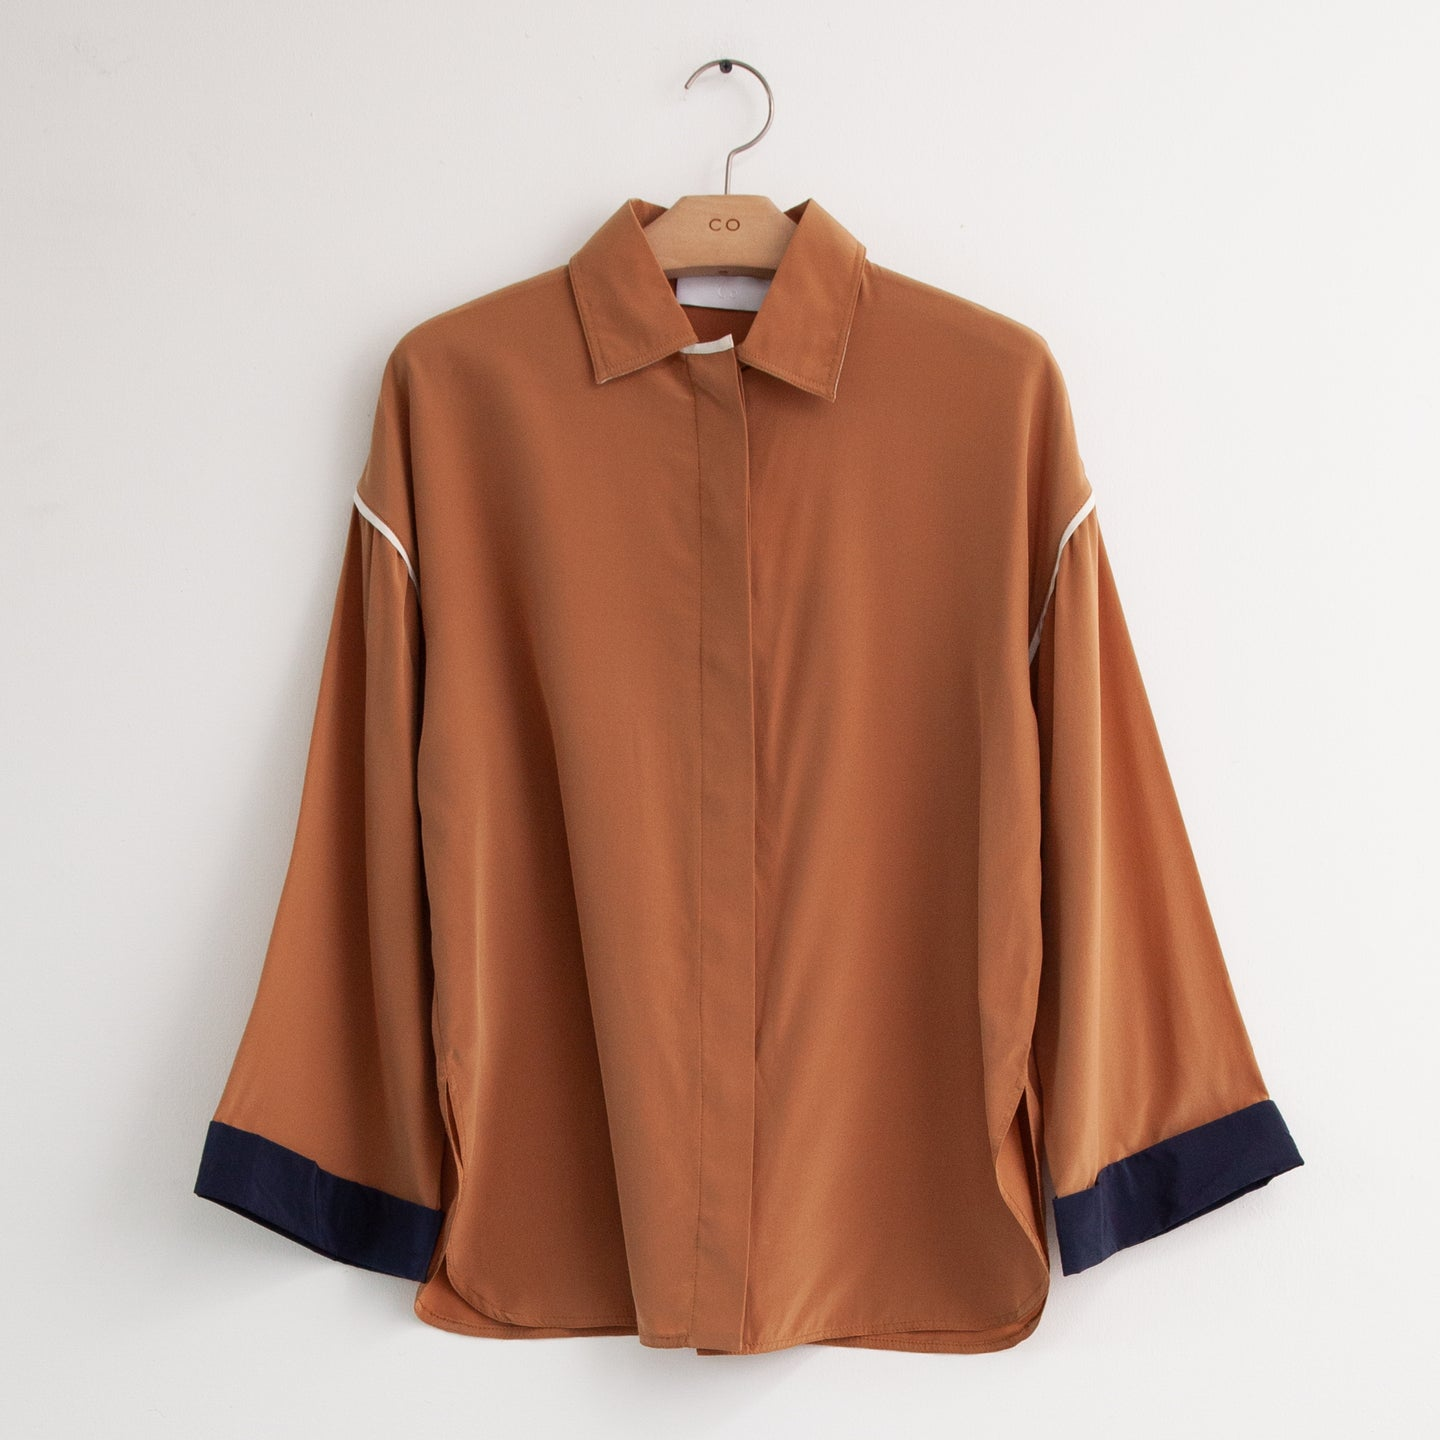 CO - Long sleeve tri color blouse with contrast piping at shoulder and wrists in tan silk